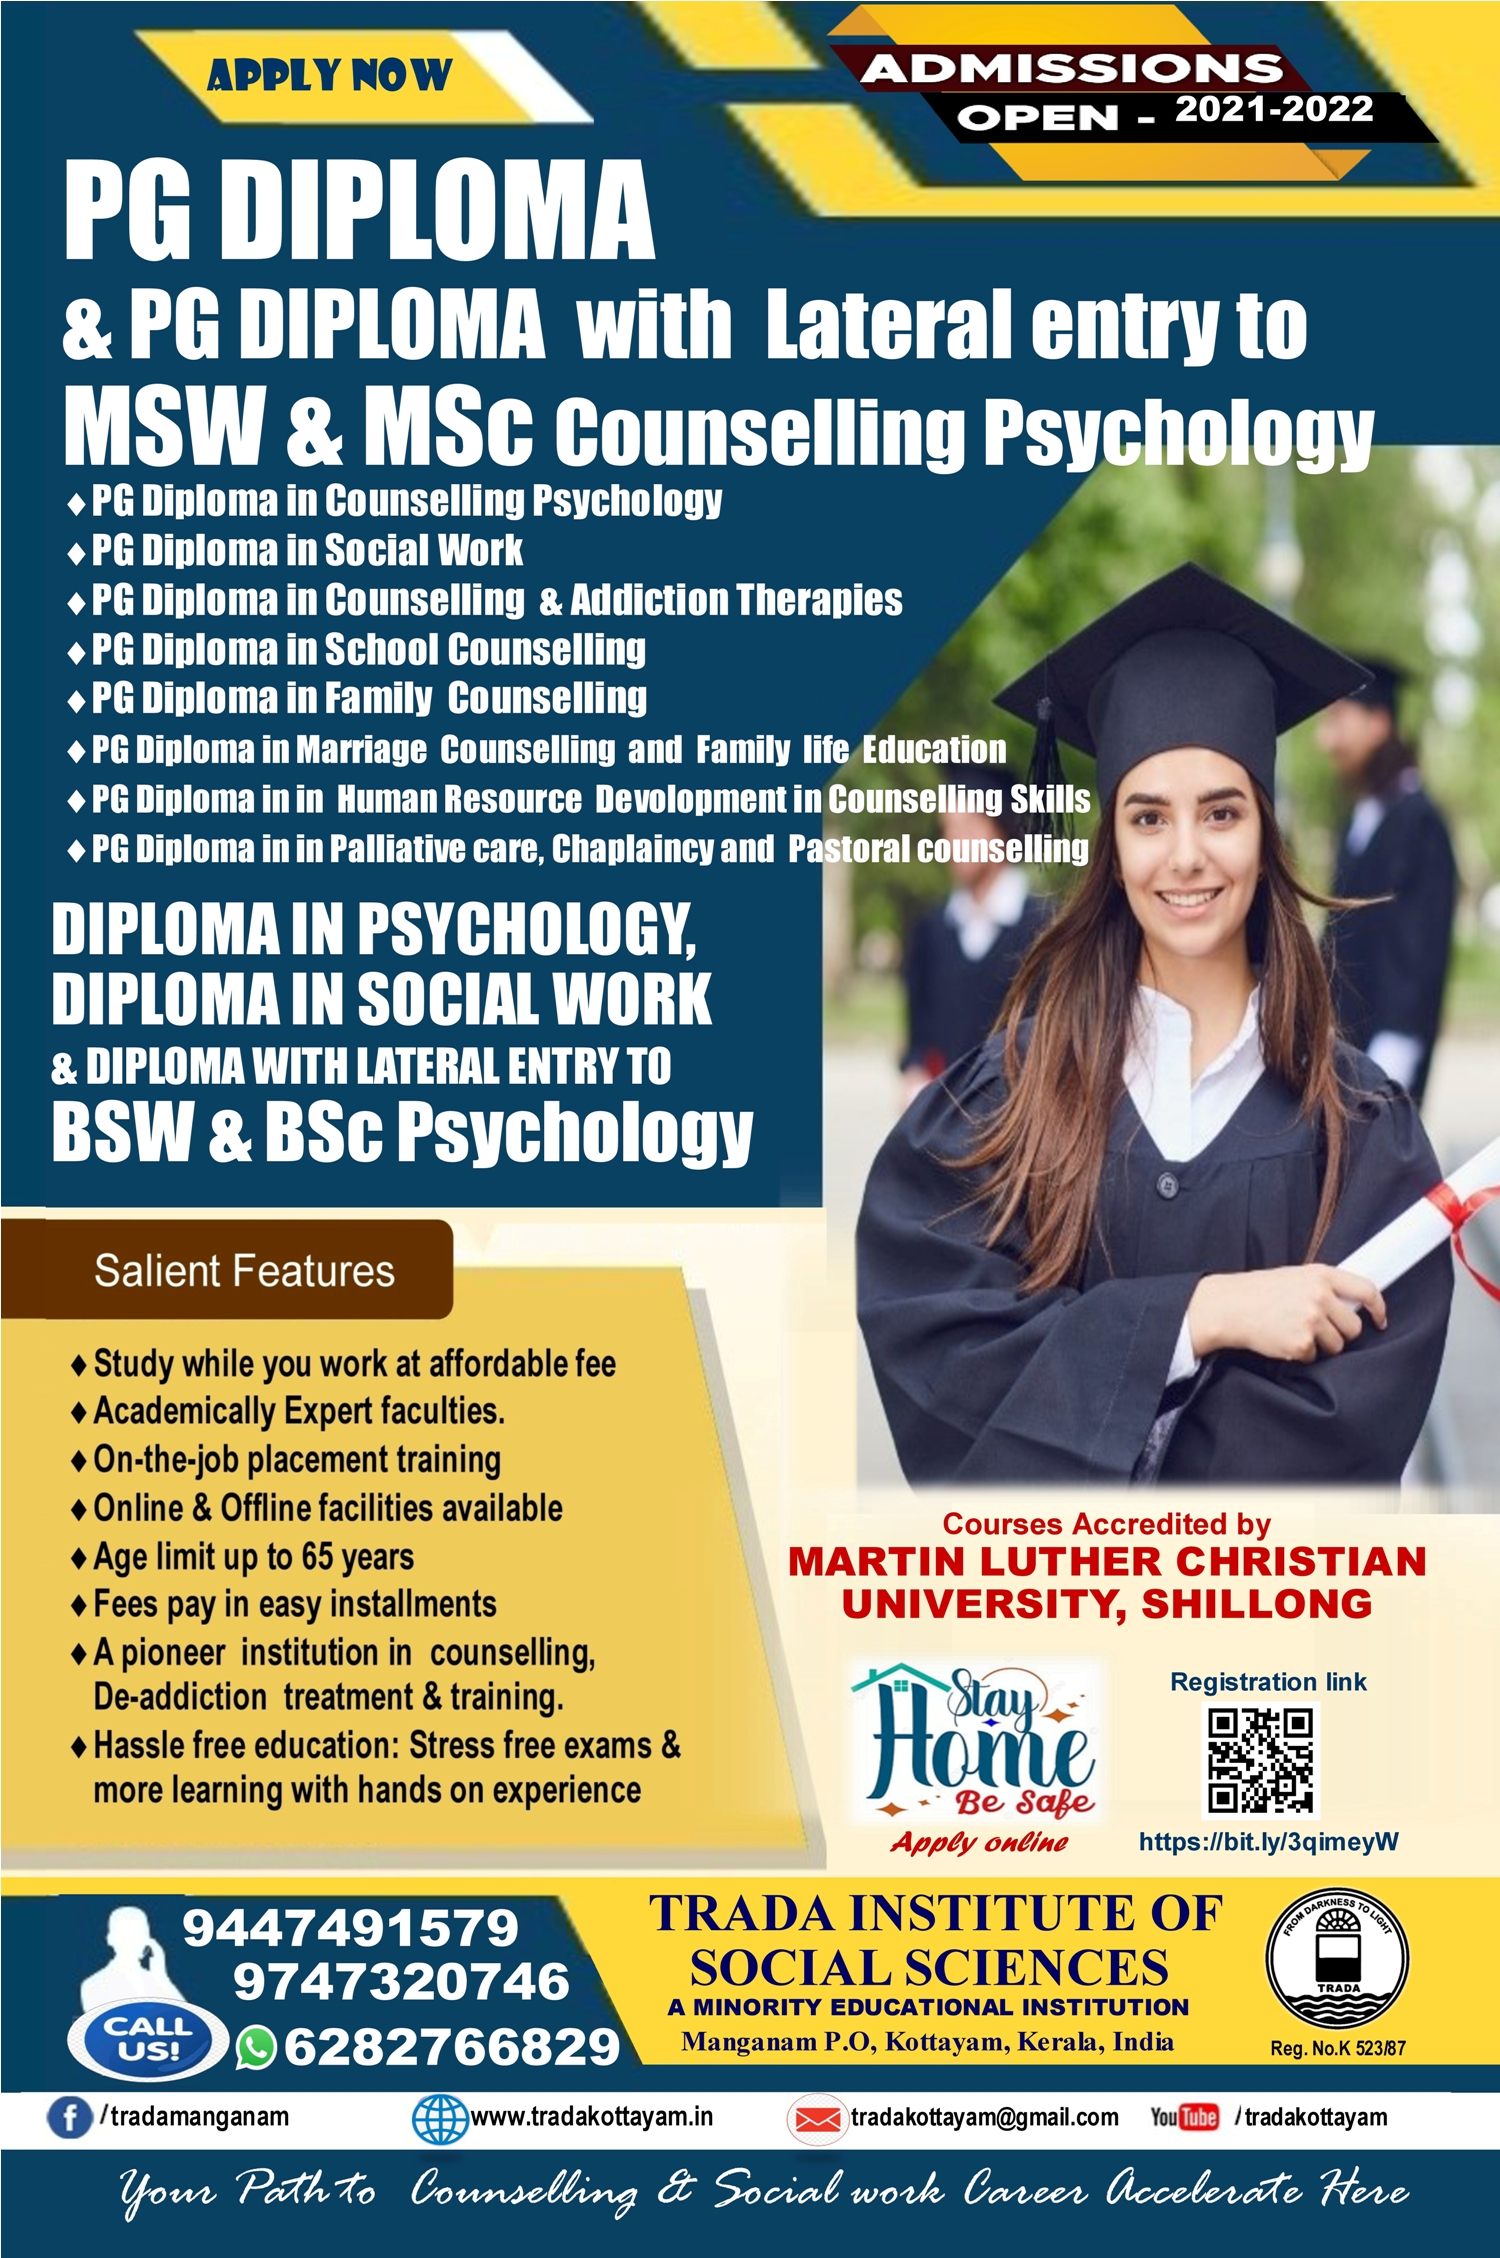 ADMISSION OPEN 2021-2022